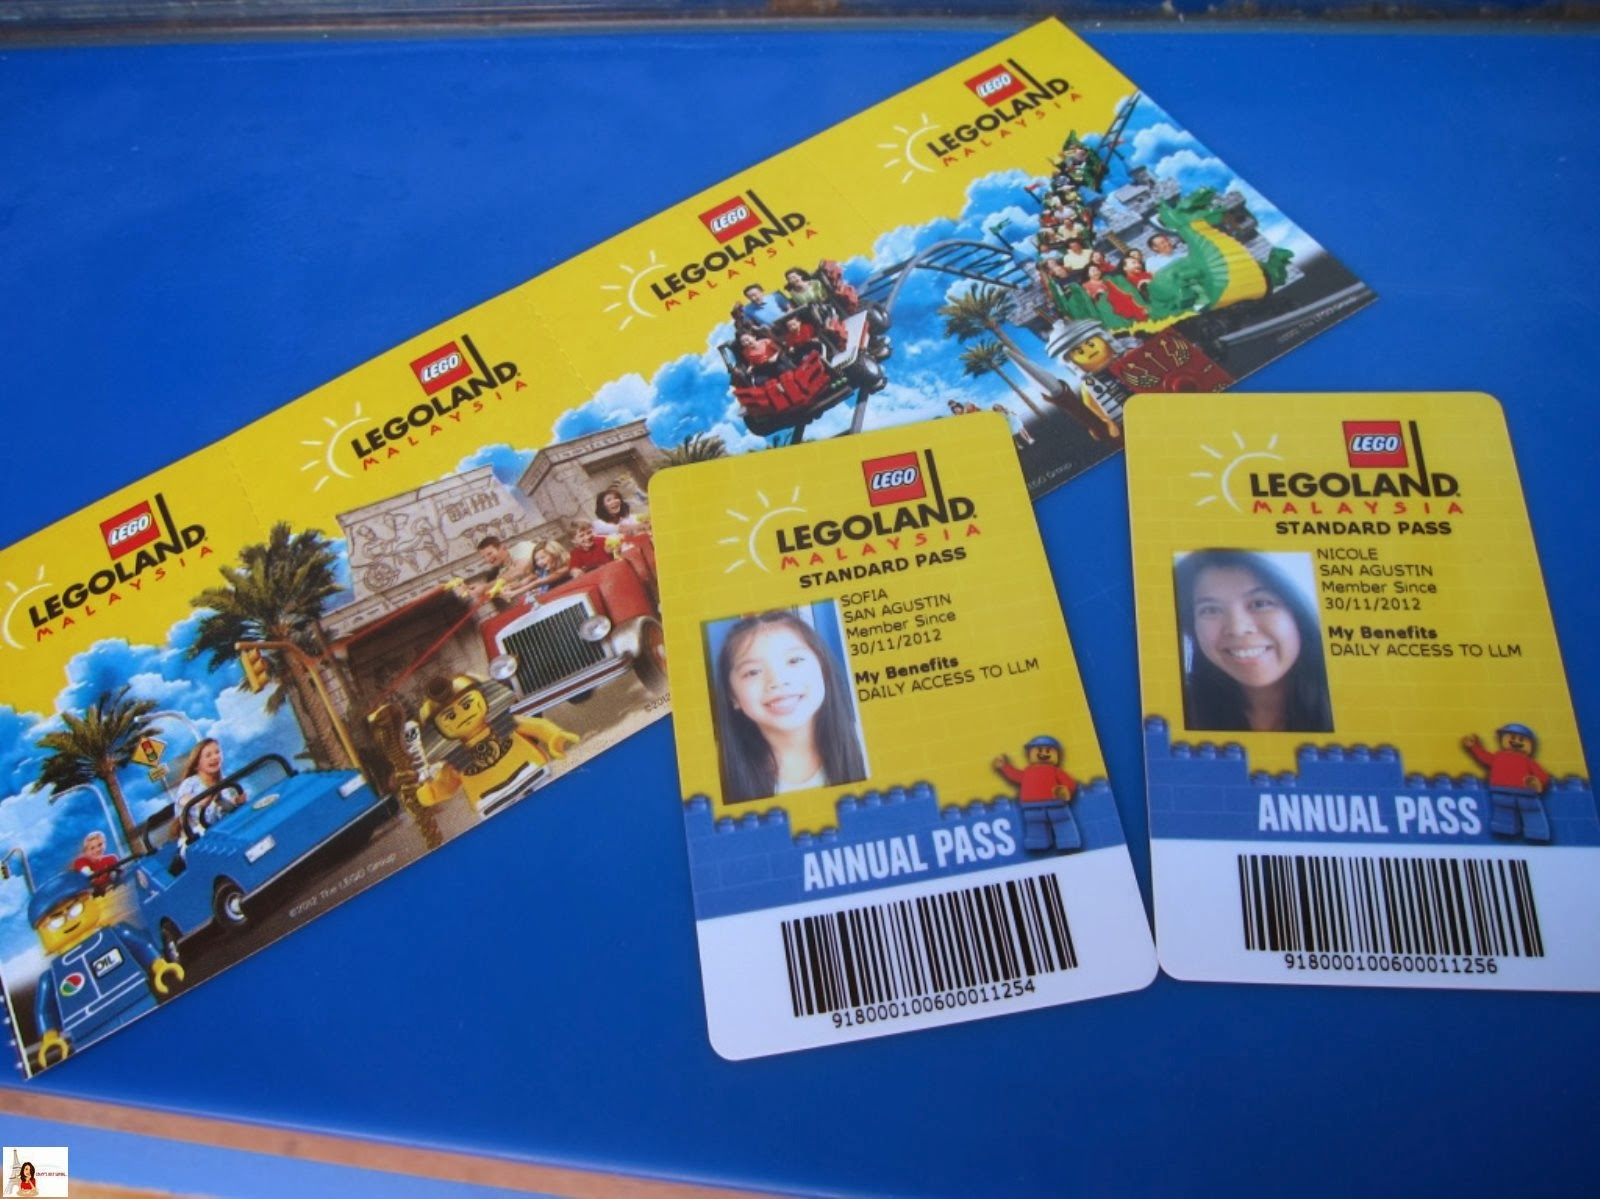 Coleys Just Saying Legoland Waterpark Johor Bahru Adventures Tiket Malaysia Theme Park Dan Water But You Need To Buy A Separate Ticket Enter Can Get For Both Parks With Discount If Youre An Annual Pass Holder